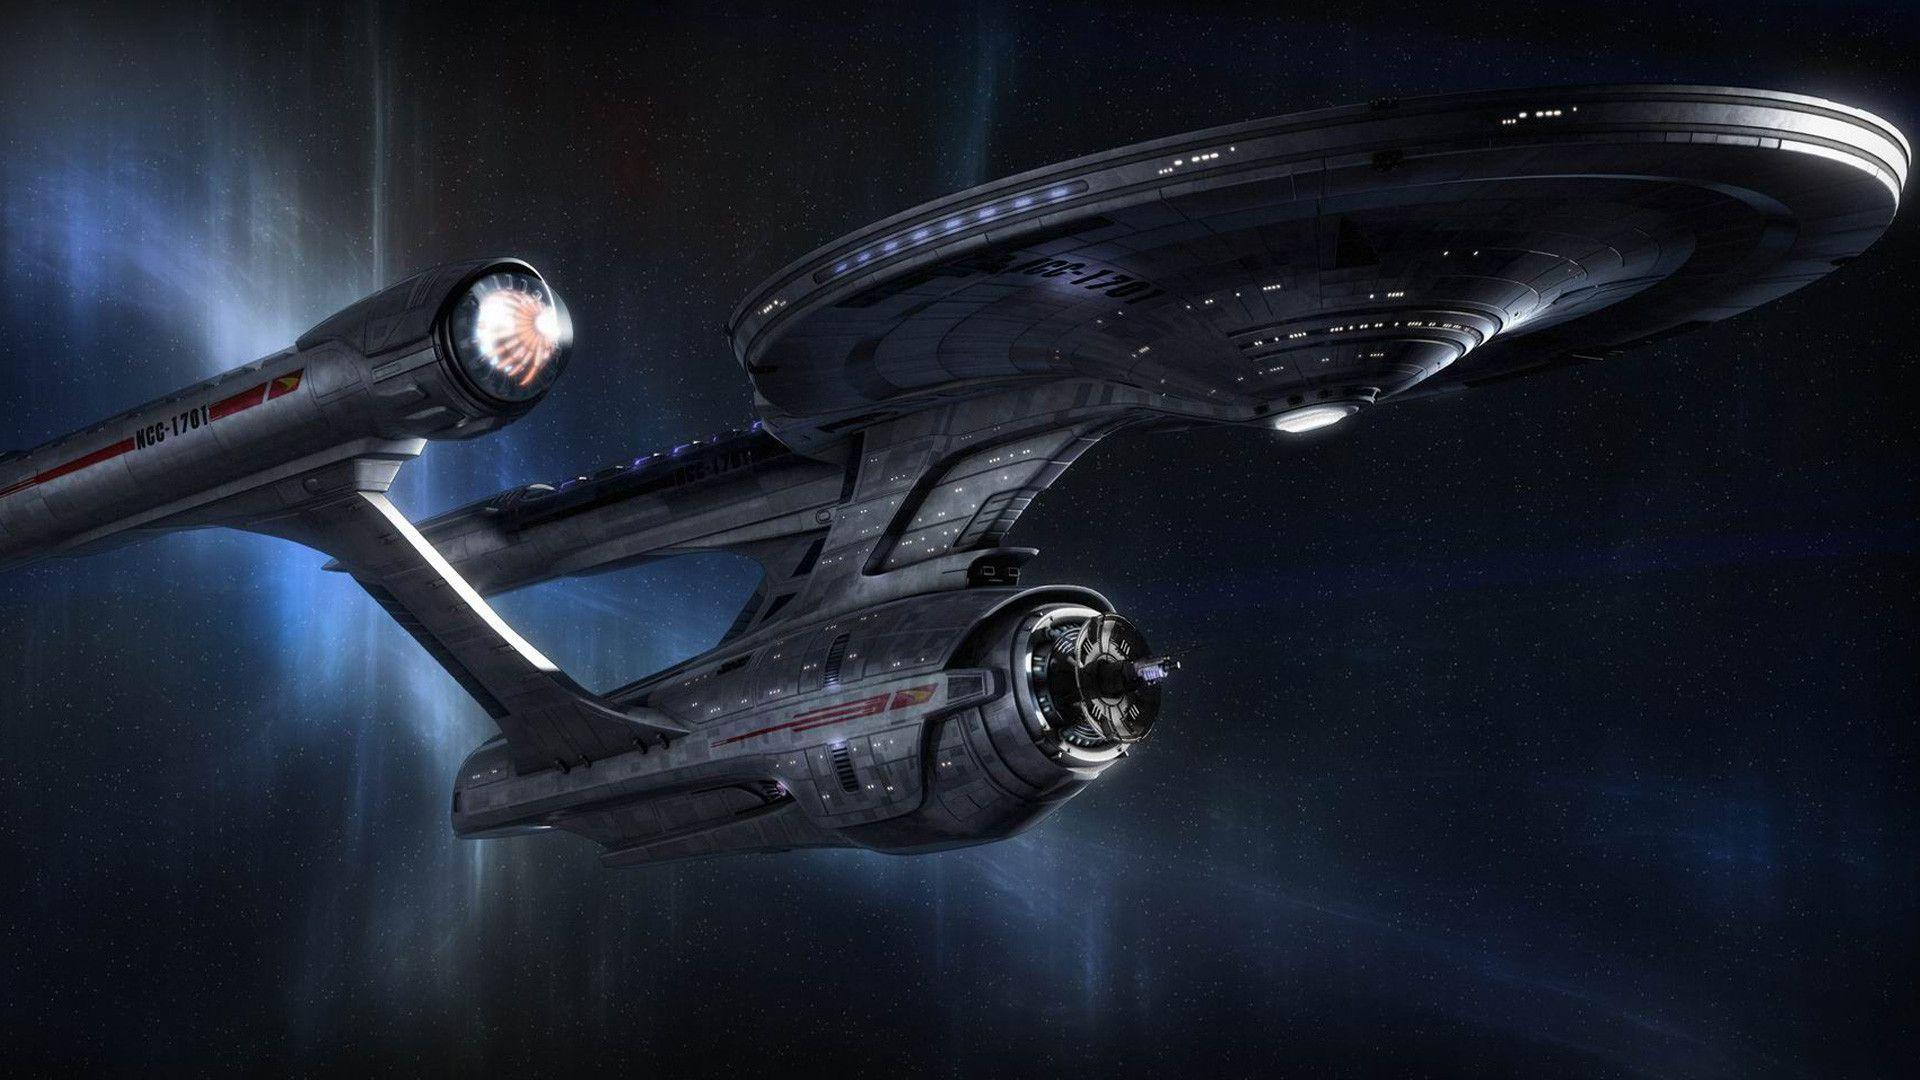 enterprise e wallpaper hd - photo #29